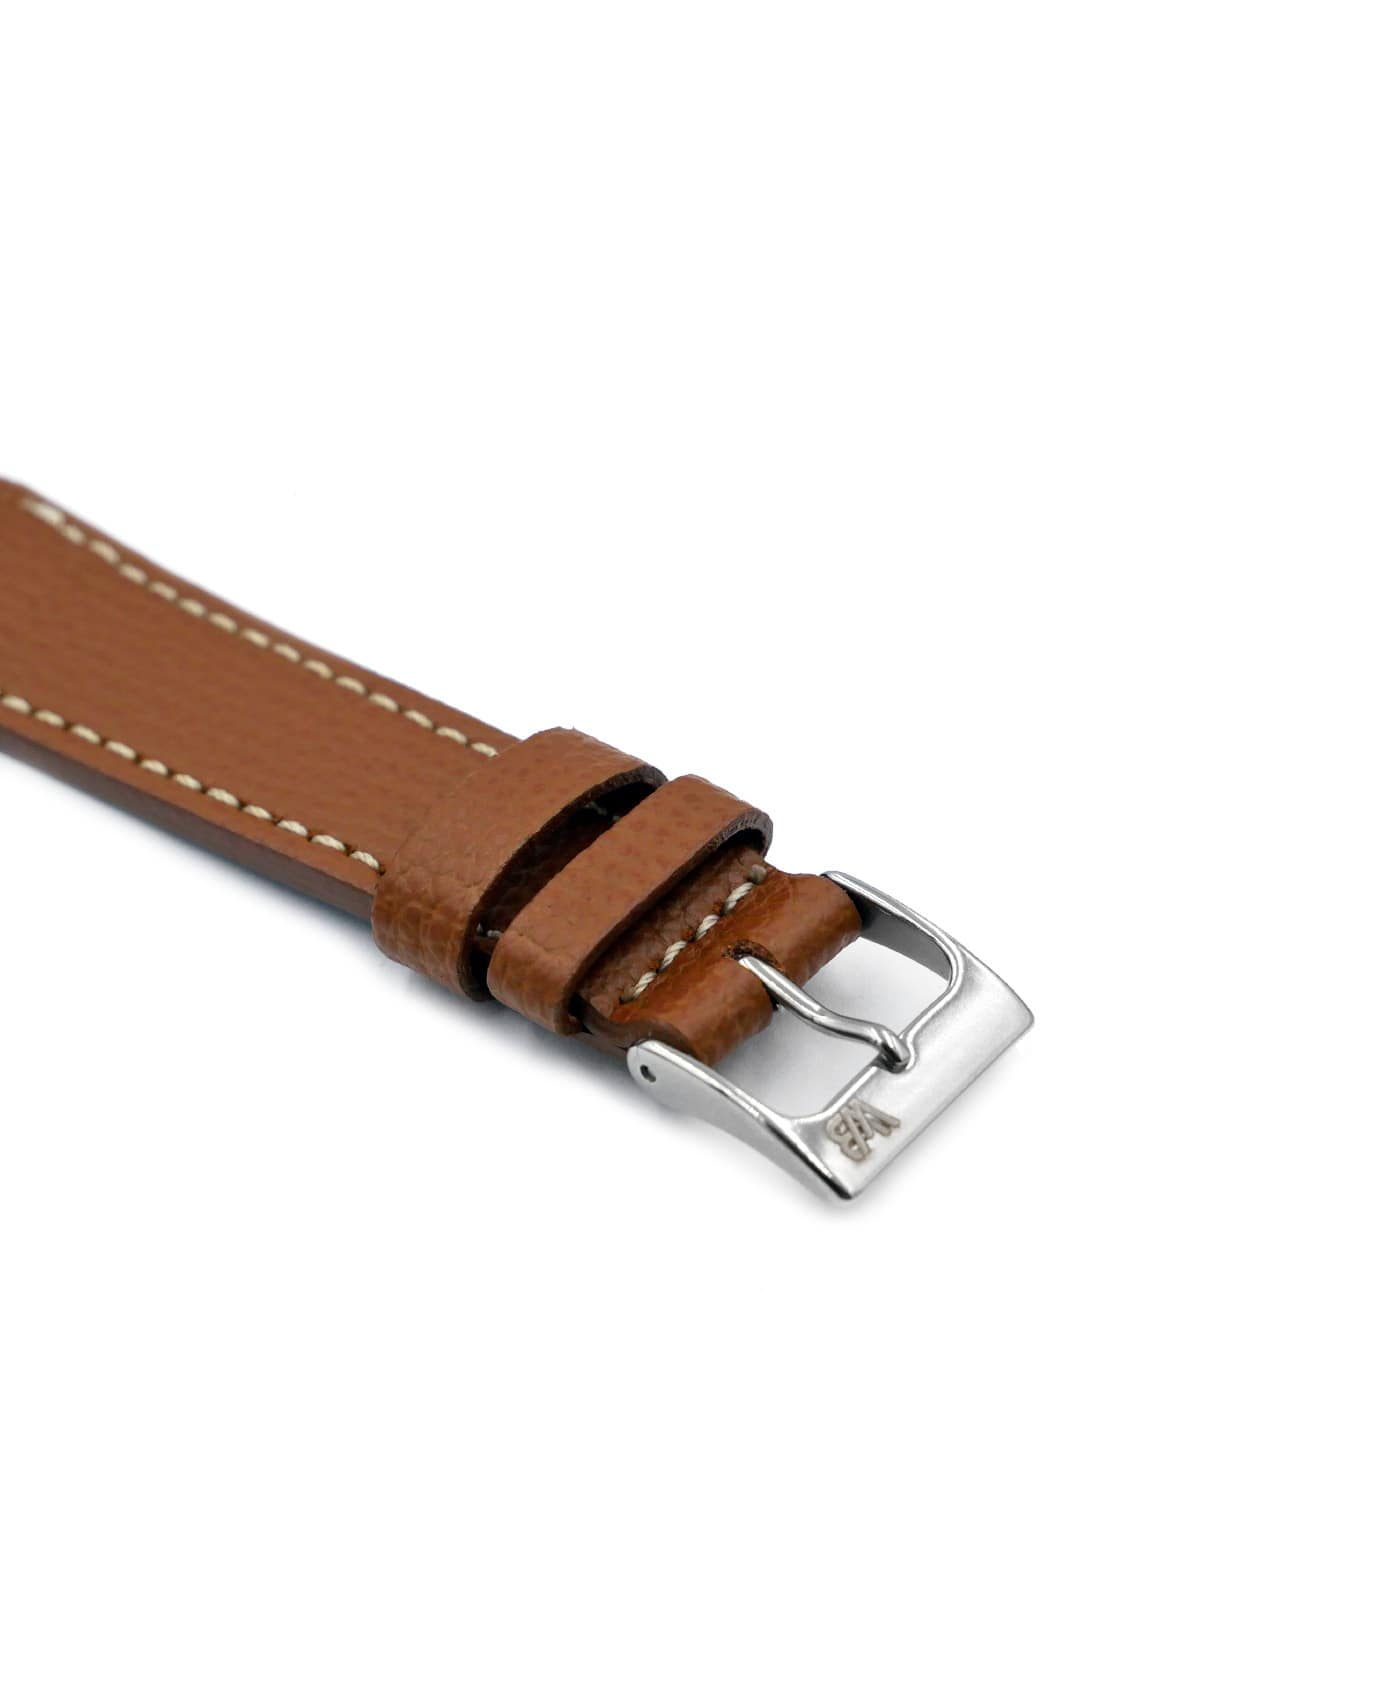 Textured calfskin leather watch strap tanned light brown side watchbandit